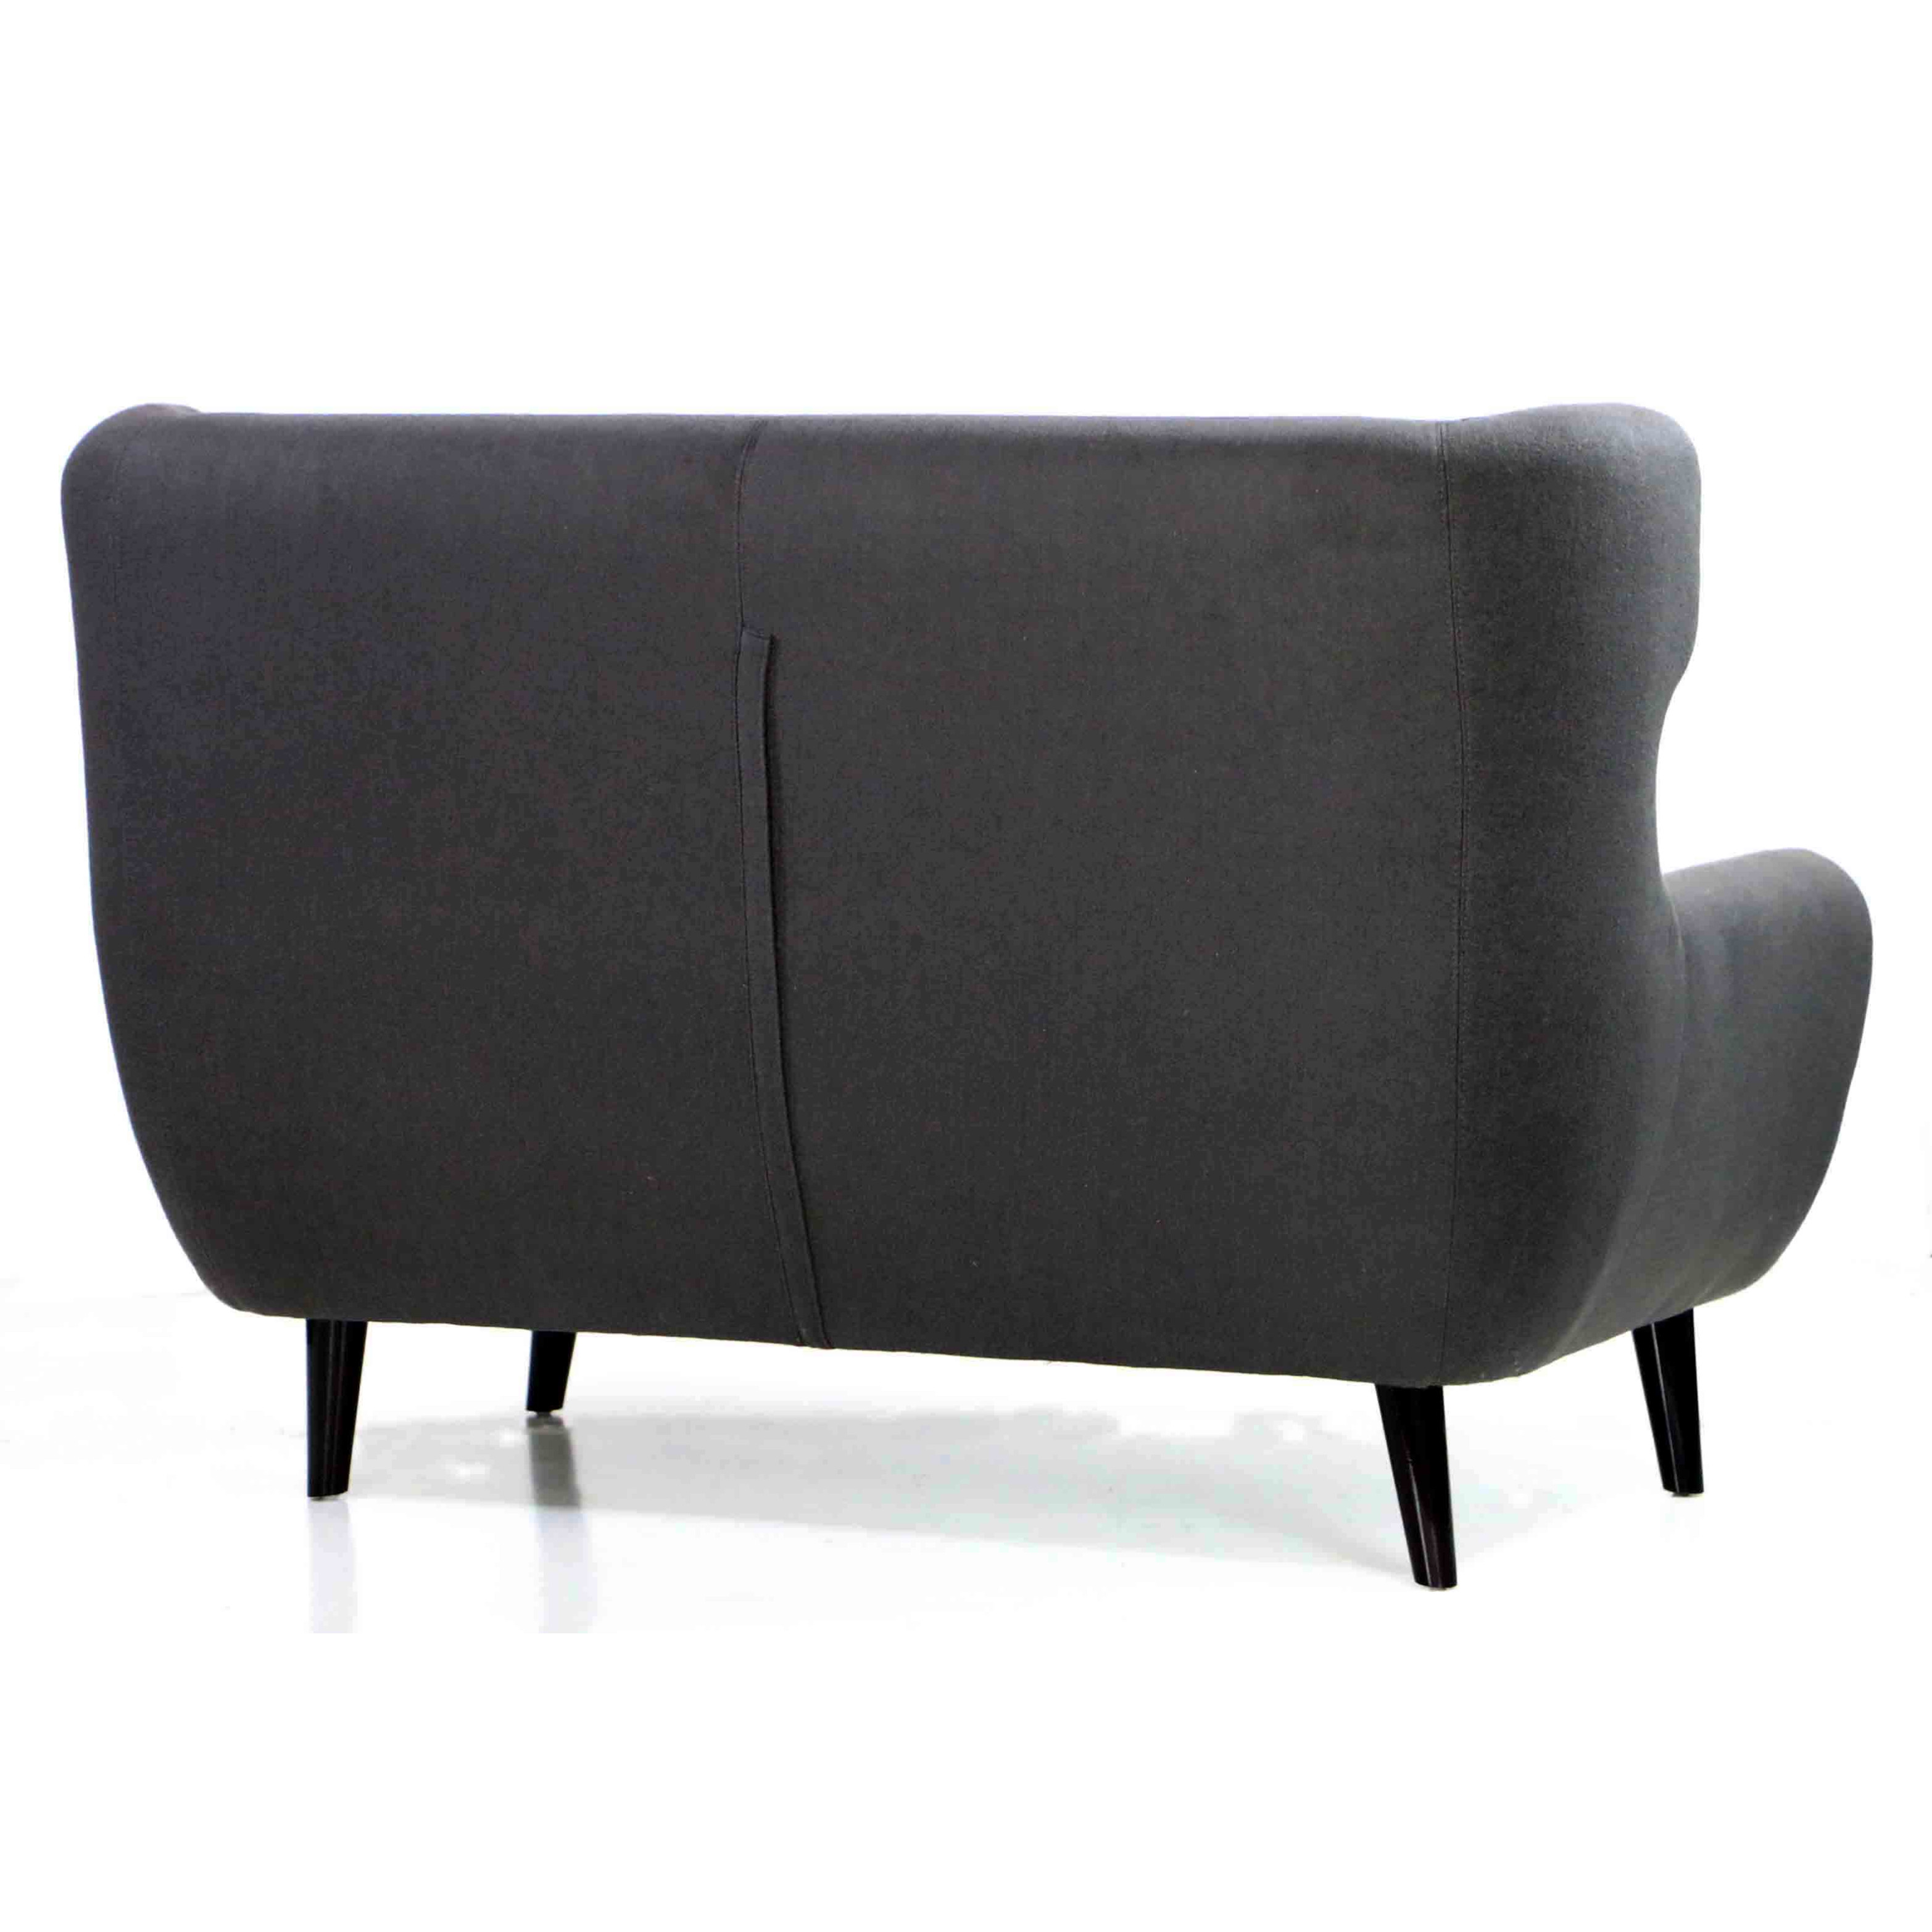 Replica wingback designer 2 seater sofa in charcoal for Design sofa replica